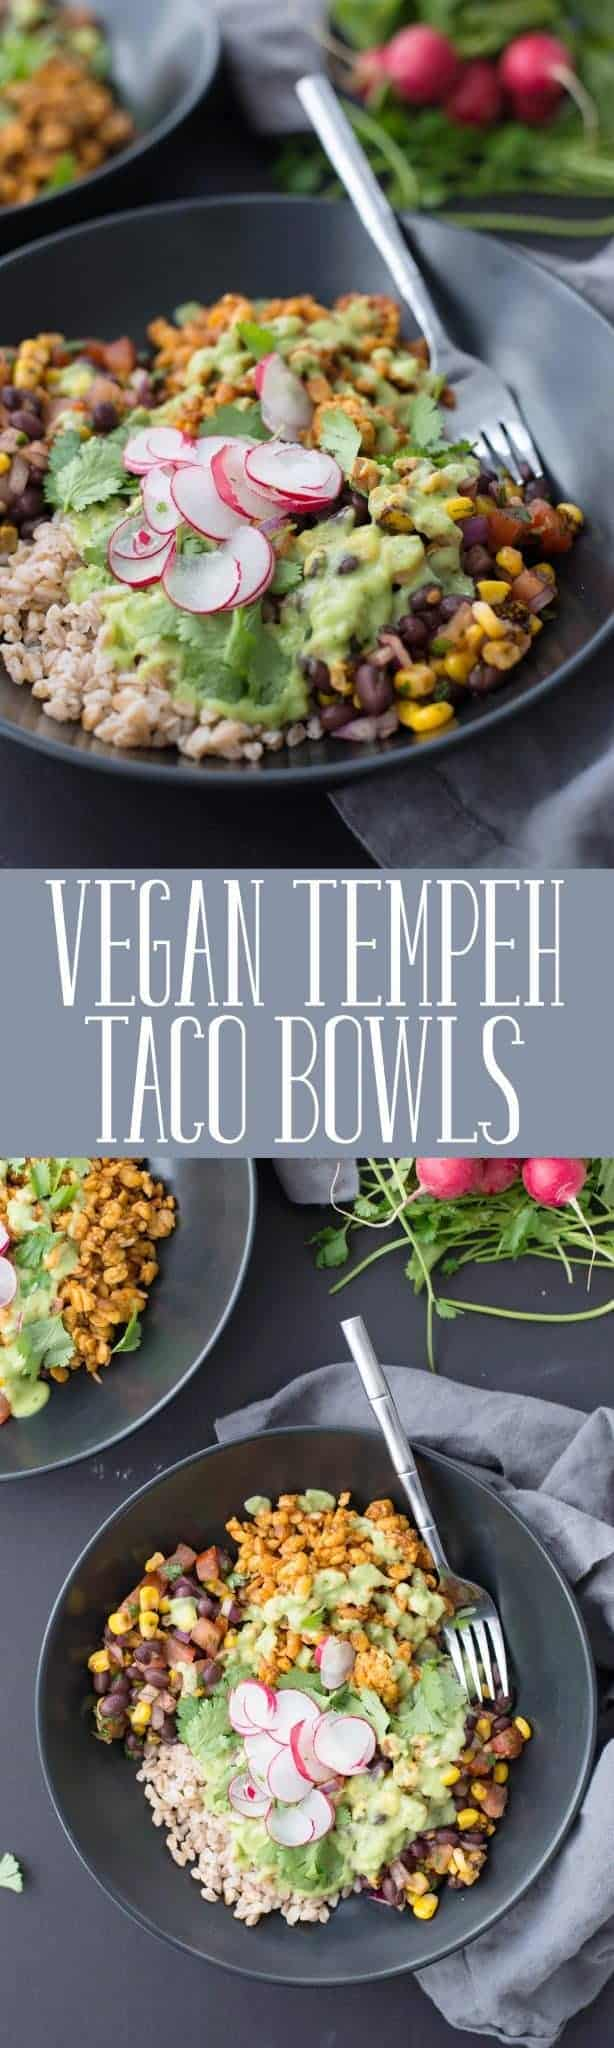 Vegan Tempeh Taco Bowls! These bowls are a MUST-MAKE. Spicy tempeh taco filling, farro, black bean and corn salsa, pickled radishes and a creamy avocado-jalapeno sauce.   delishknowledge.com